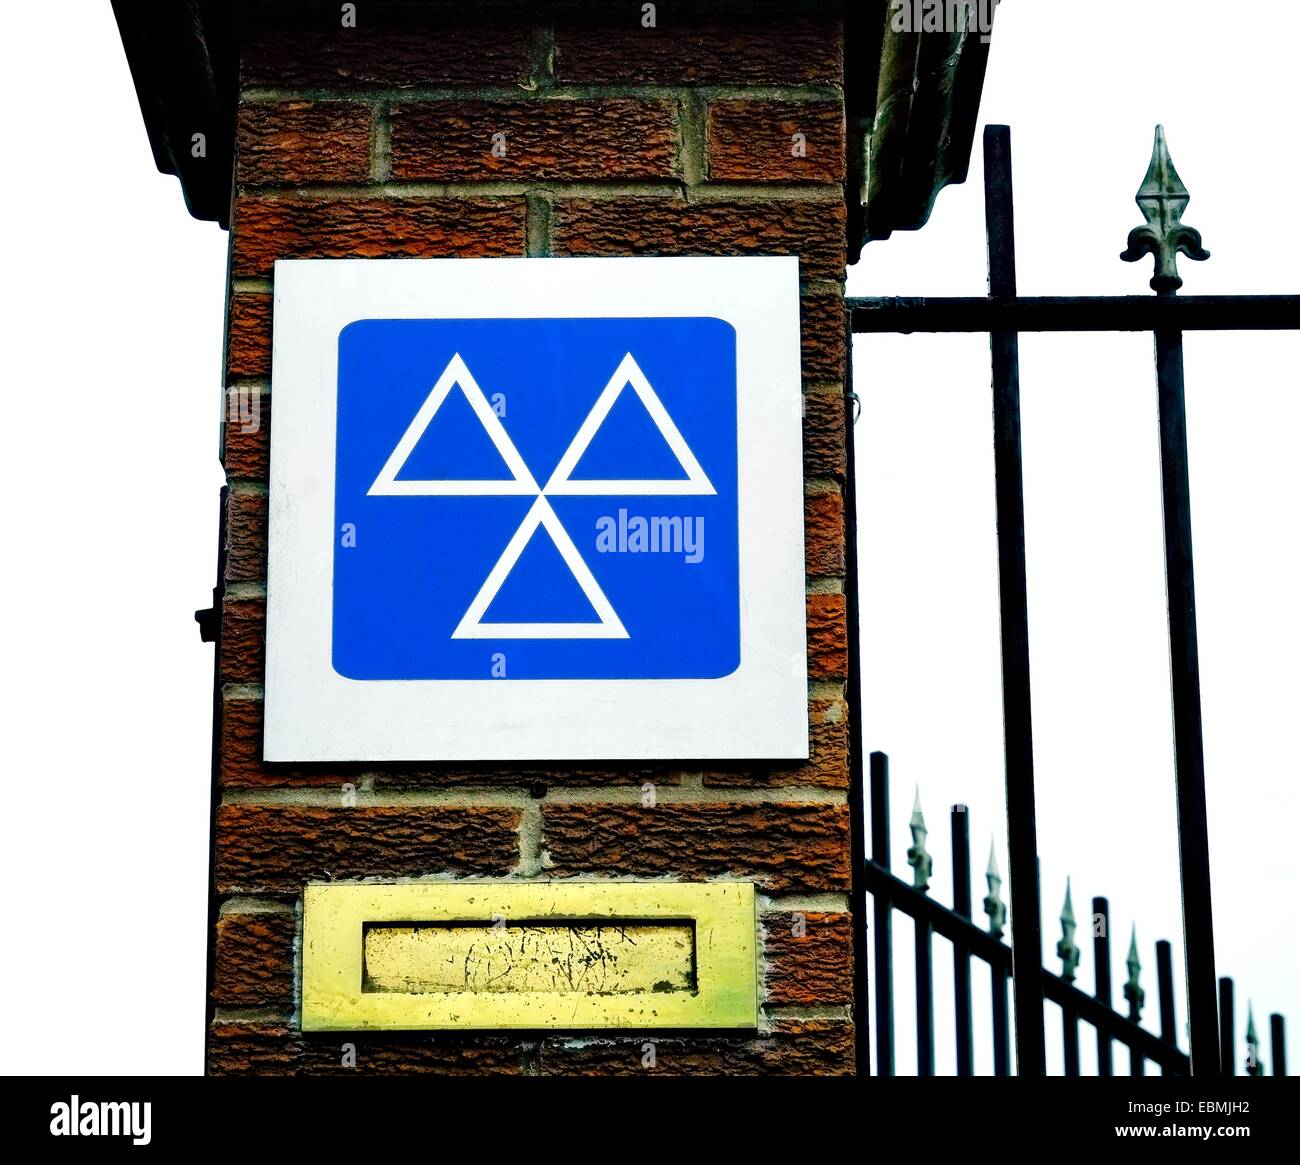 An MOT approved test centre sign England UK - Stock Image